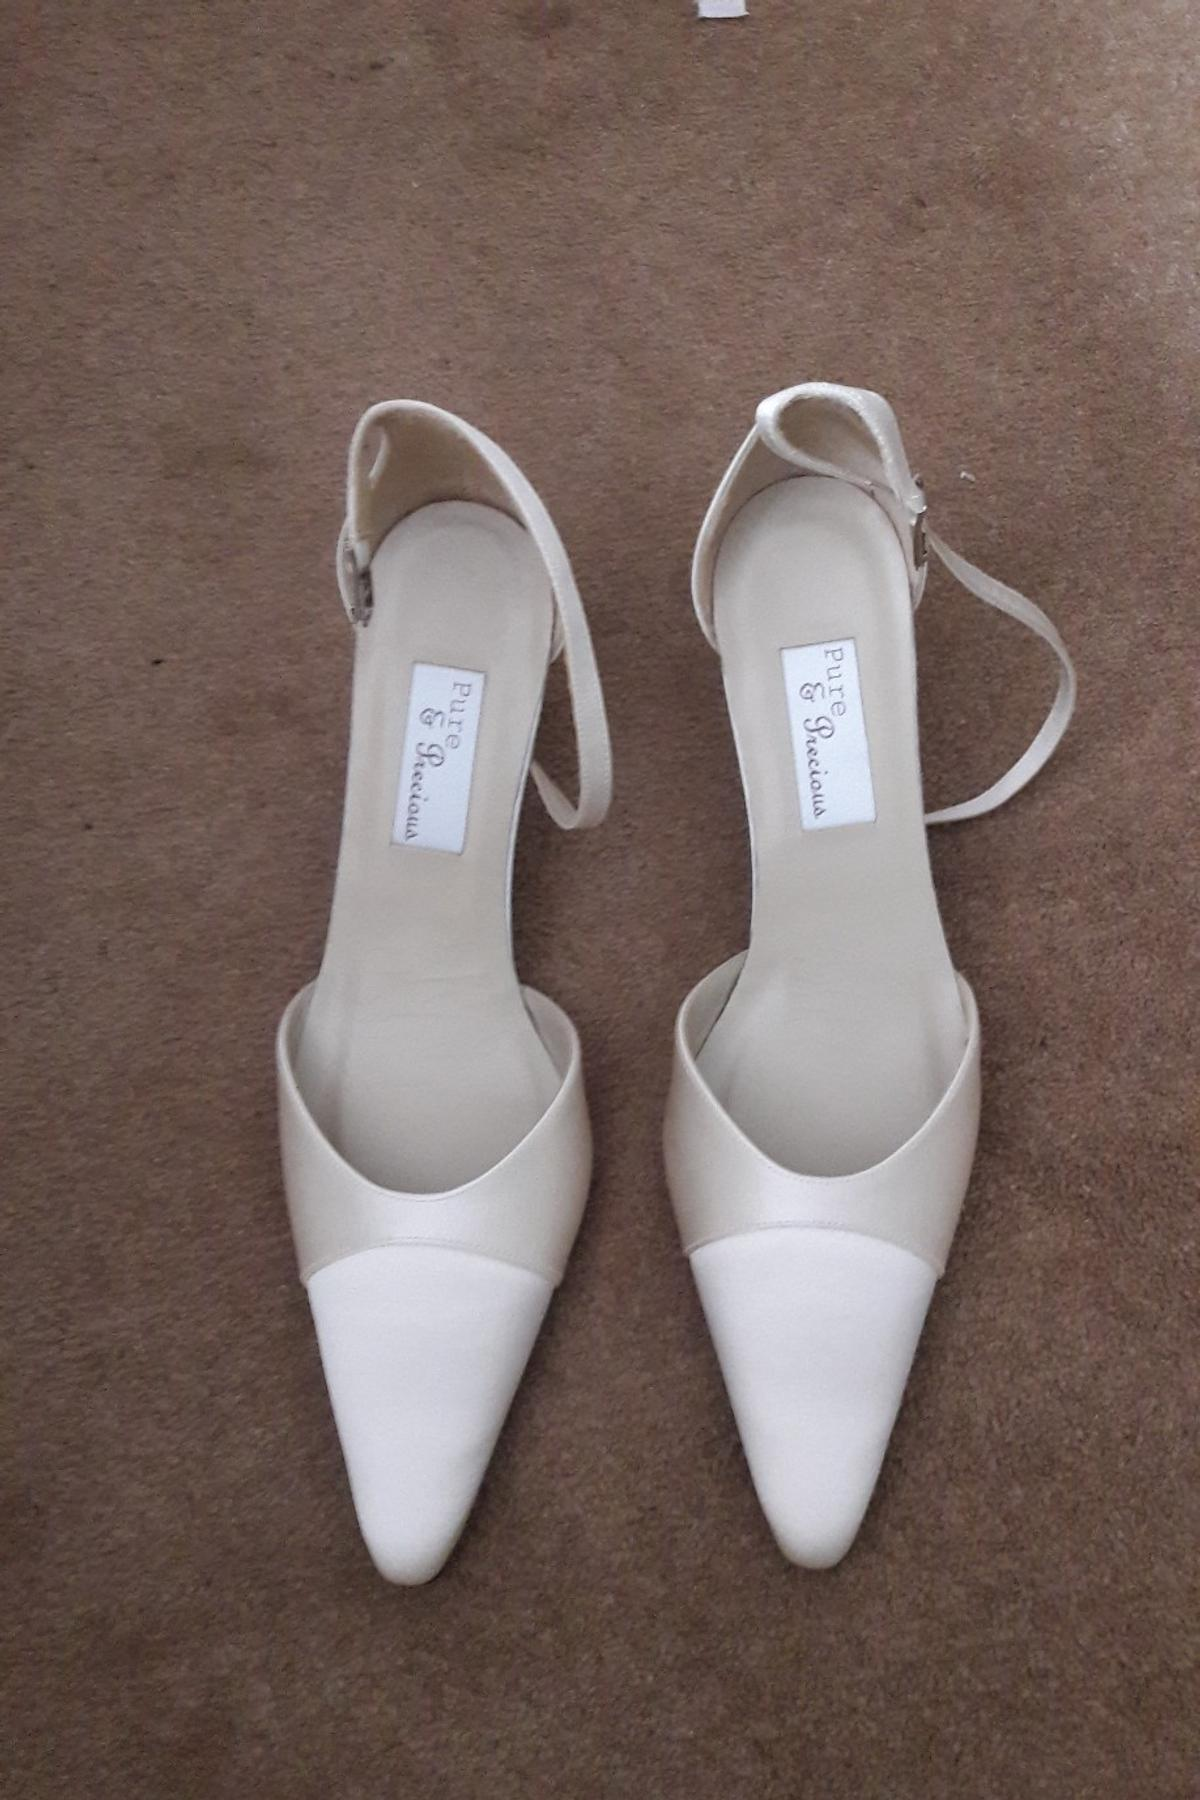 Wedding Shoes Ivory In London Borough Of Havering For 10 00 For Sale Shpock